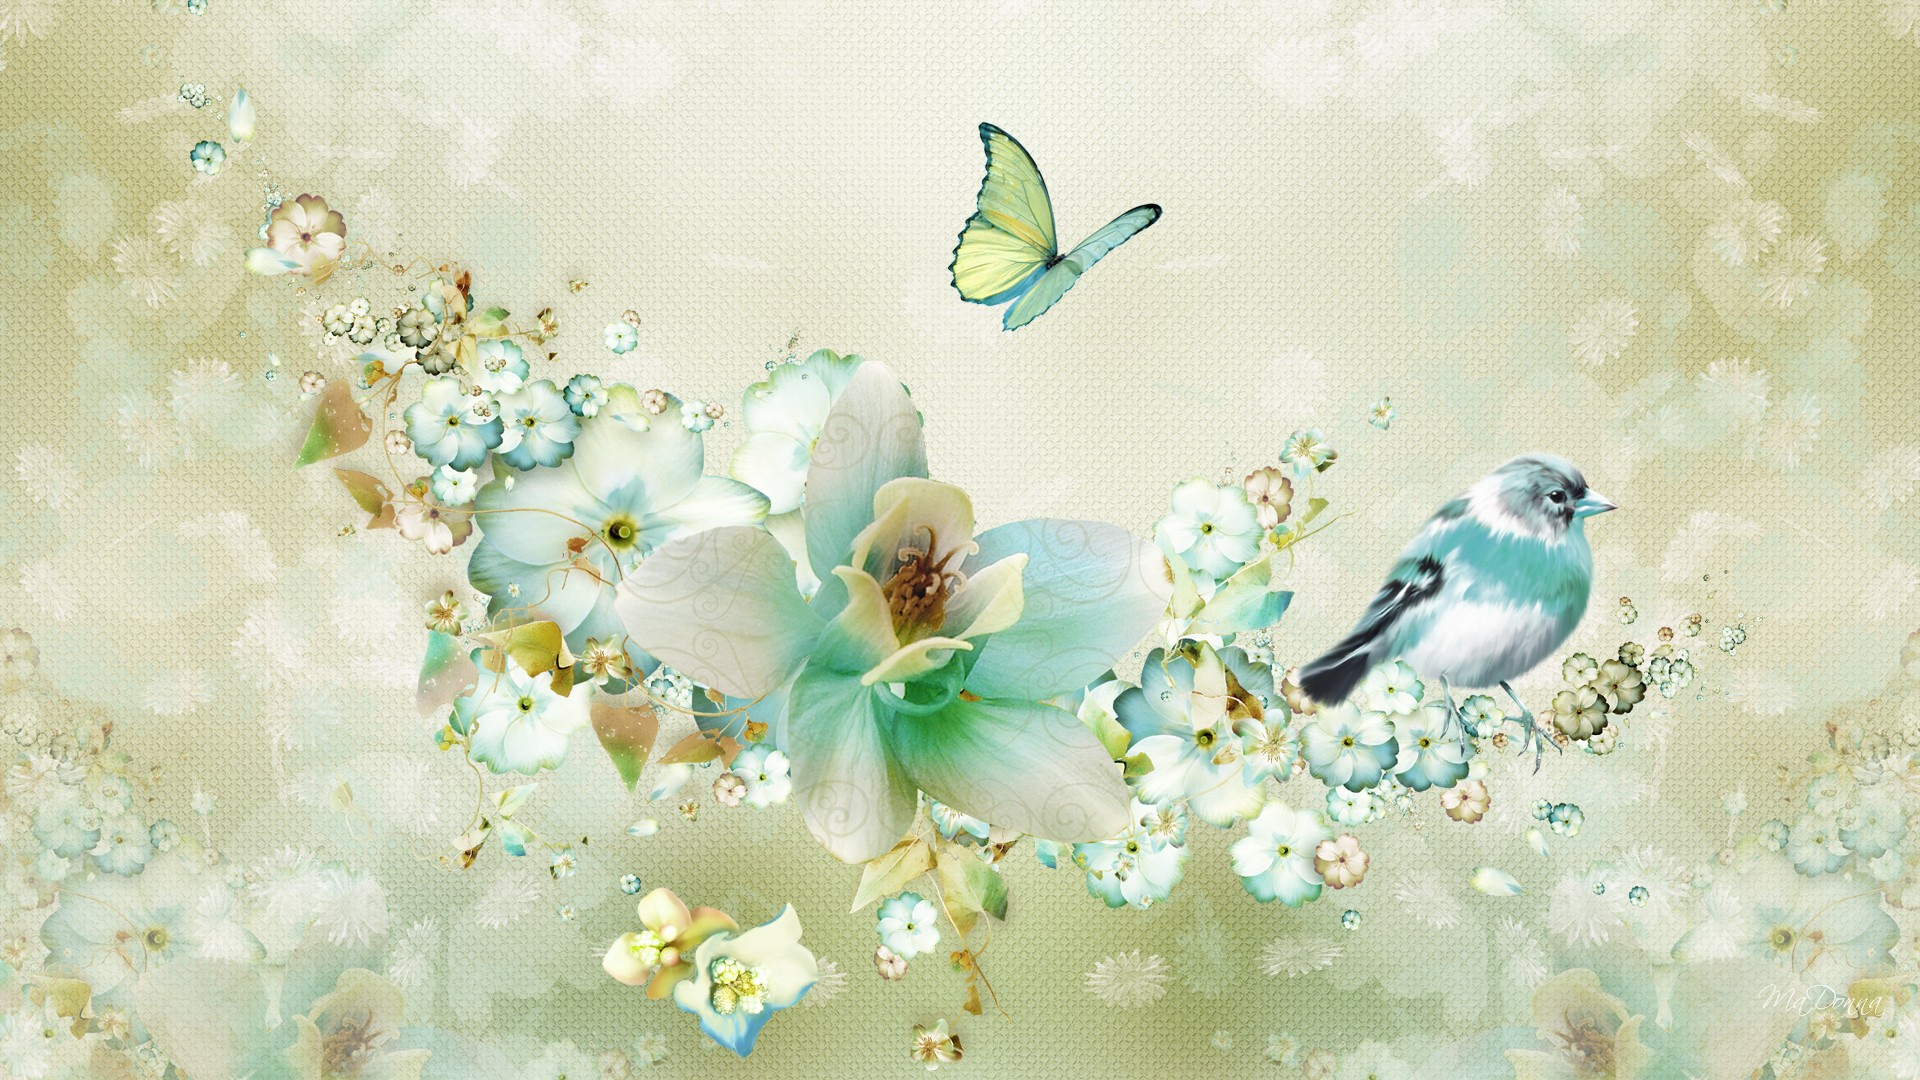 Flowers Birds and Butterfly wallpaper   ForWallpapercom 1920x1080